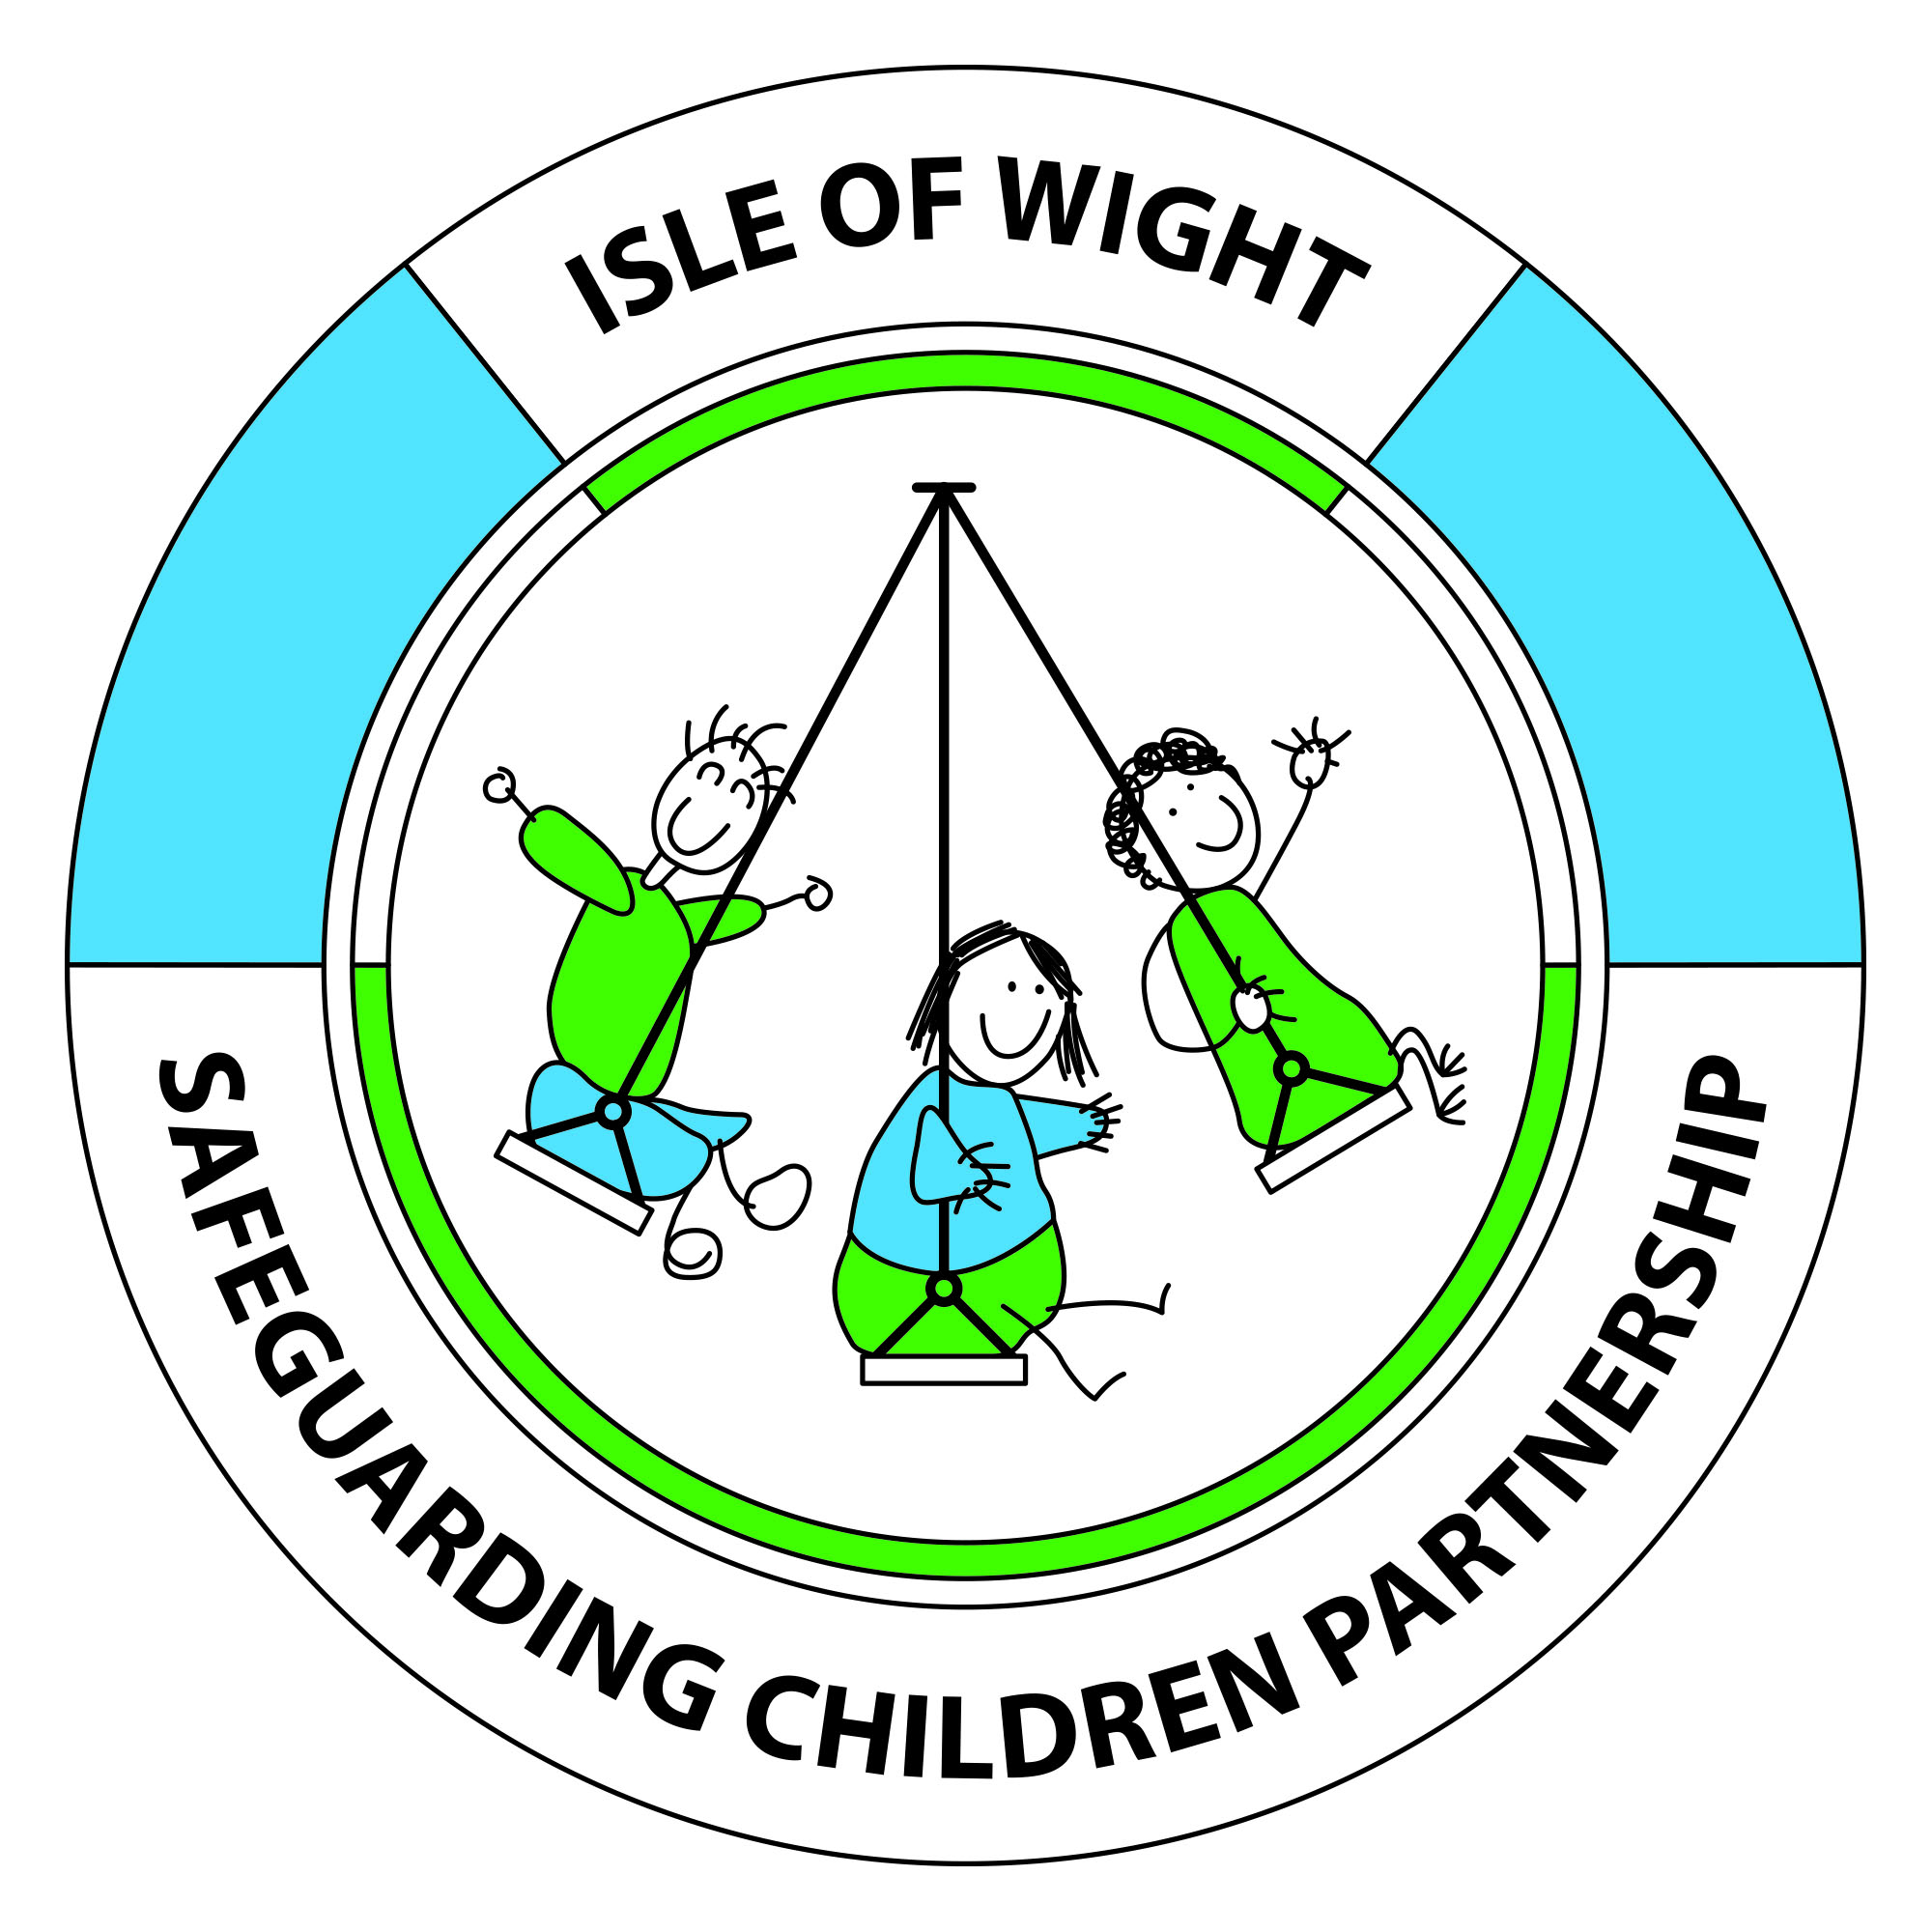 Isle of Wight Safeguarding Children Partnership